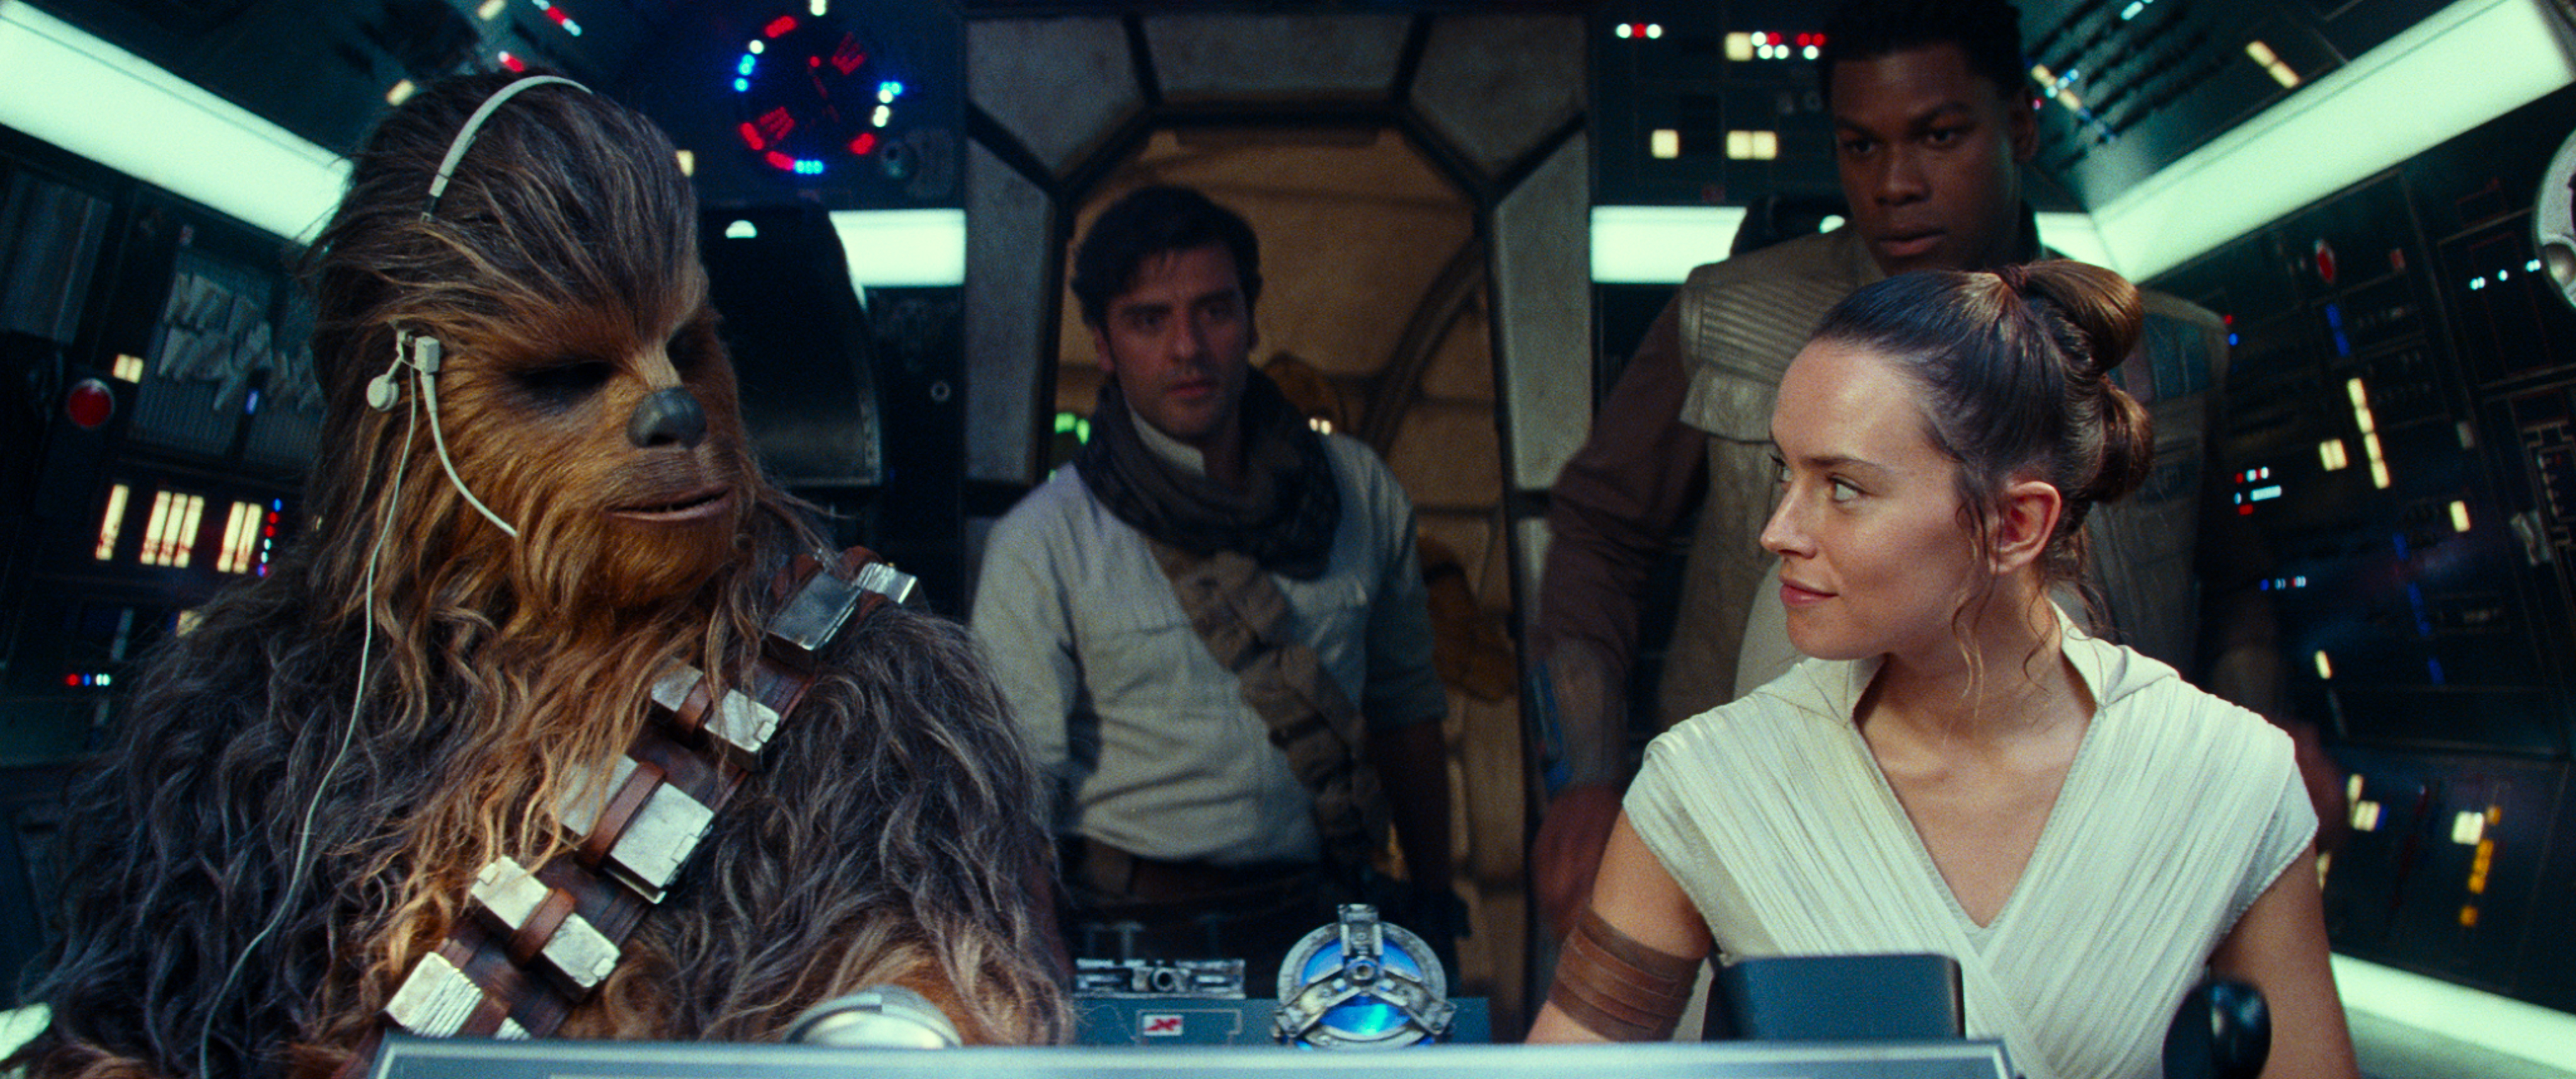 Star Wars: The Rise of Skywalker is one of the must see movies in theaters on Christmas day. Photo of Joonas Suotamo is Chewbacca, Oscar Isaac is Poe Dameron, Daisy Ridley is Rey and John Boyega is Finn in STAR WARS:  THE RISE OF SKYWALKER